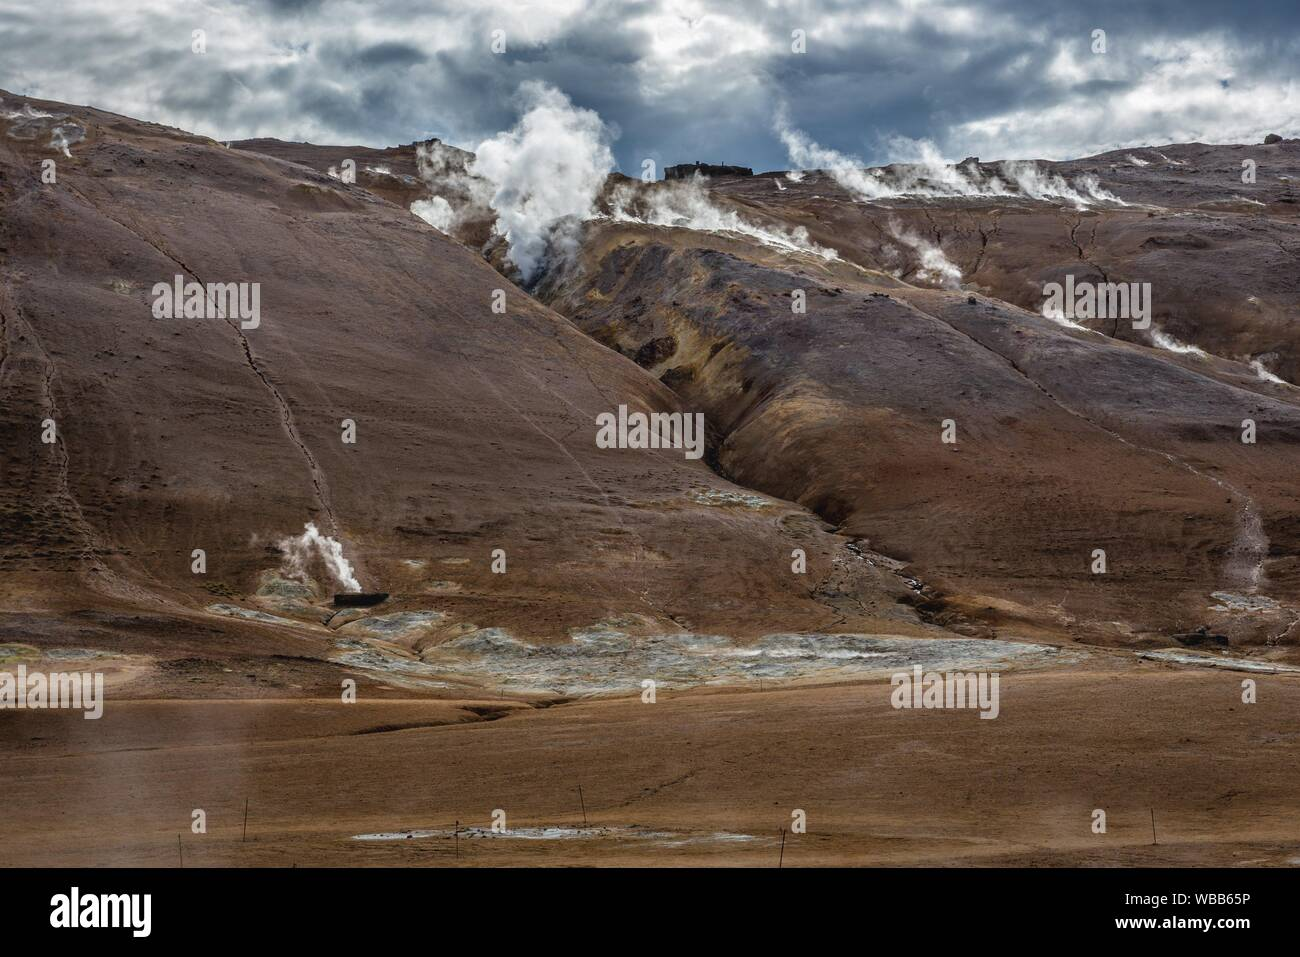 Namafjall mountain seen from Hverir boiling mud area also called Hverarond near Reykjahlid town in the north of Iceland. Stock Photo